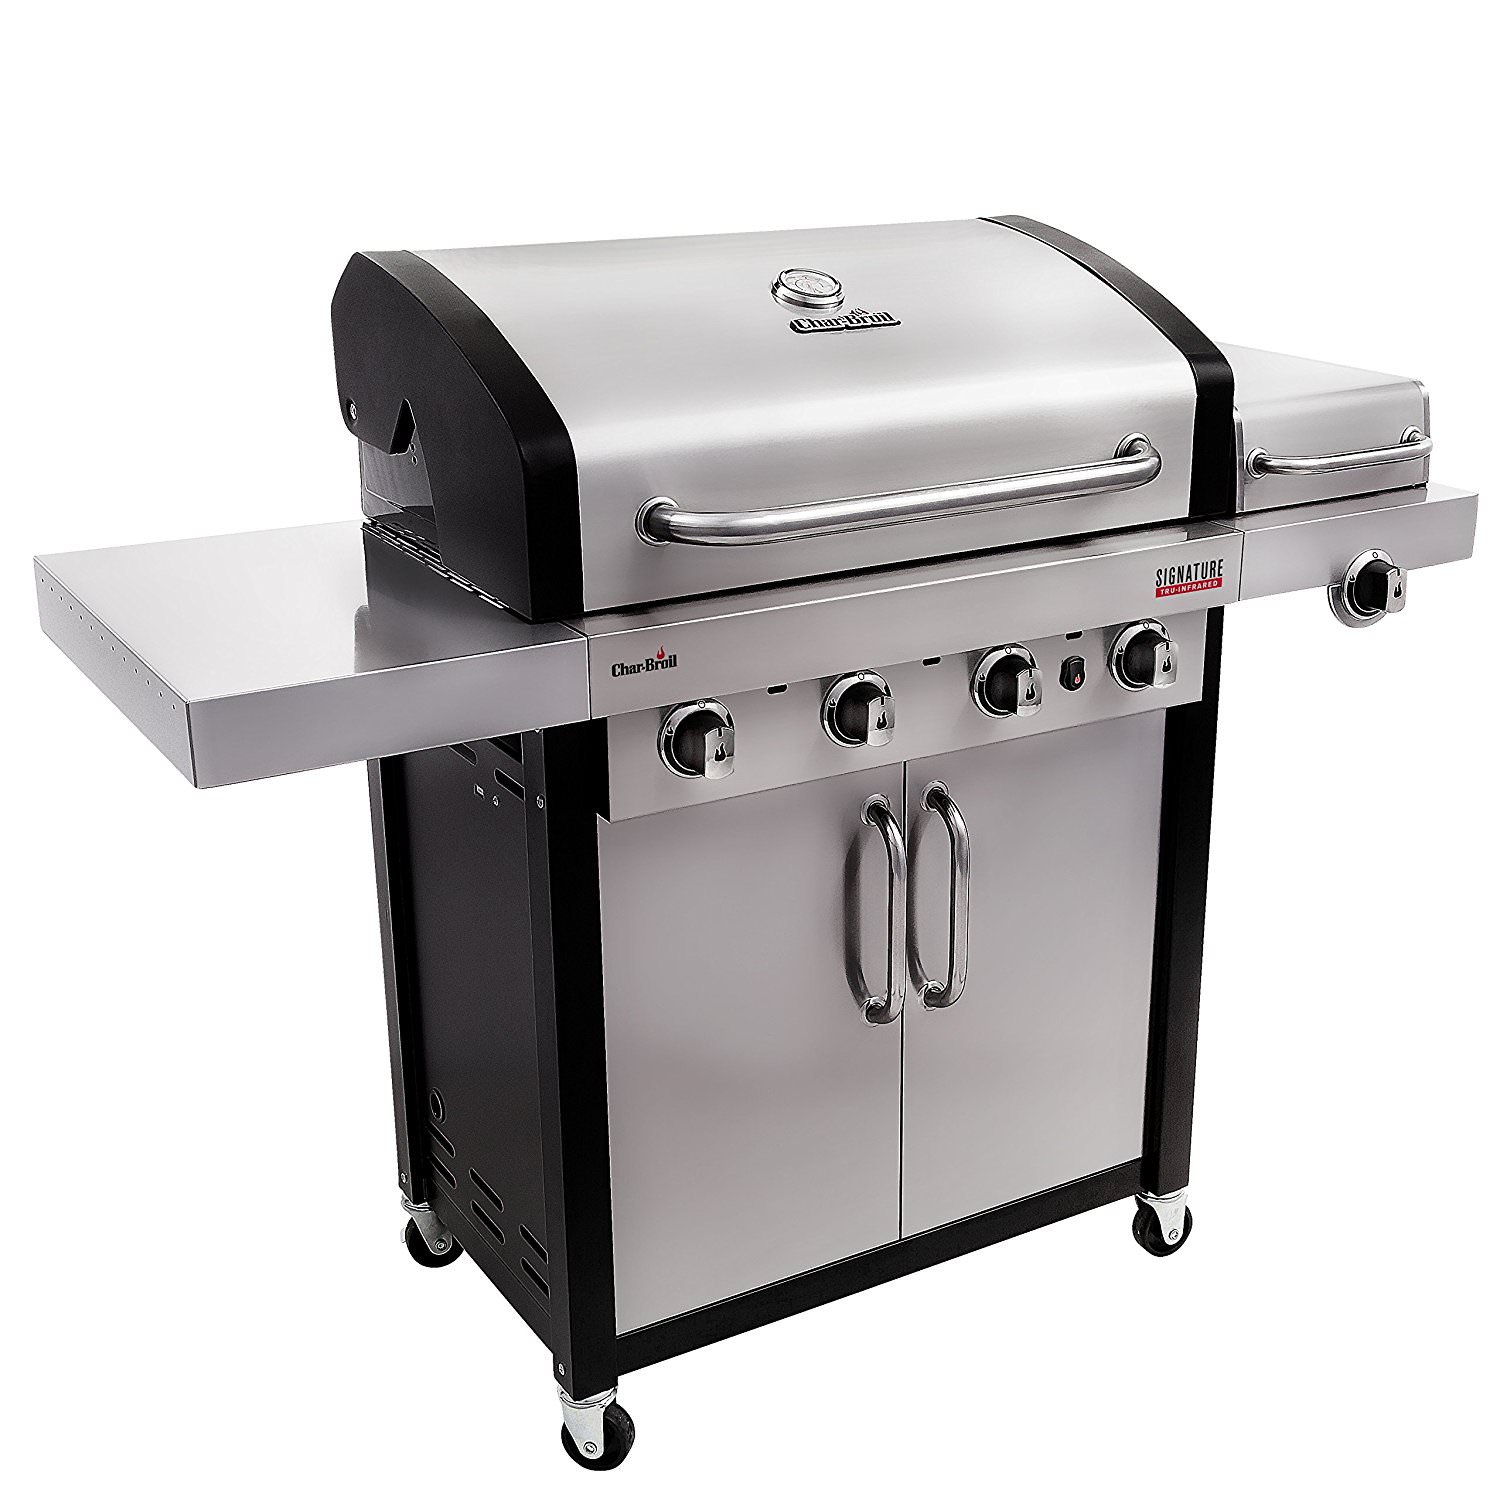 Char-Broil Signature TRU-Infrared 4 Burner Gas Grill